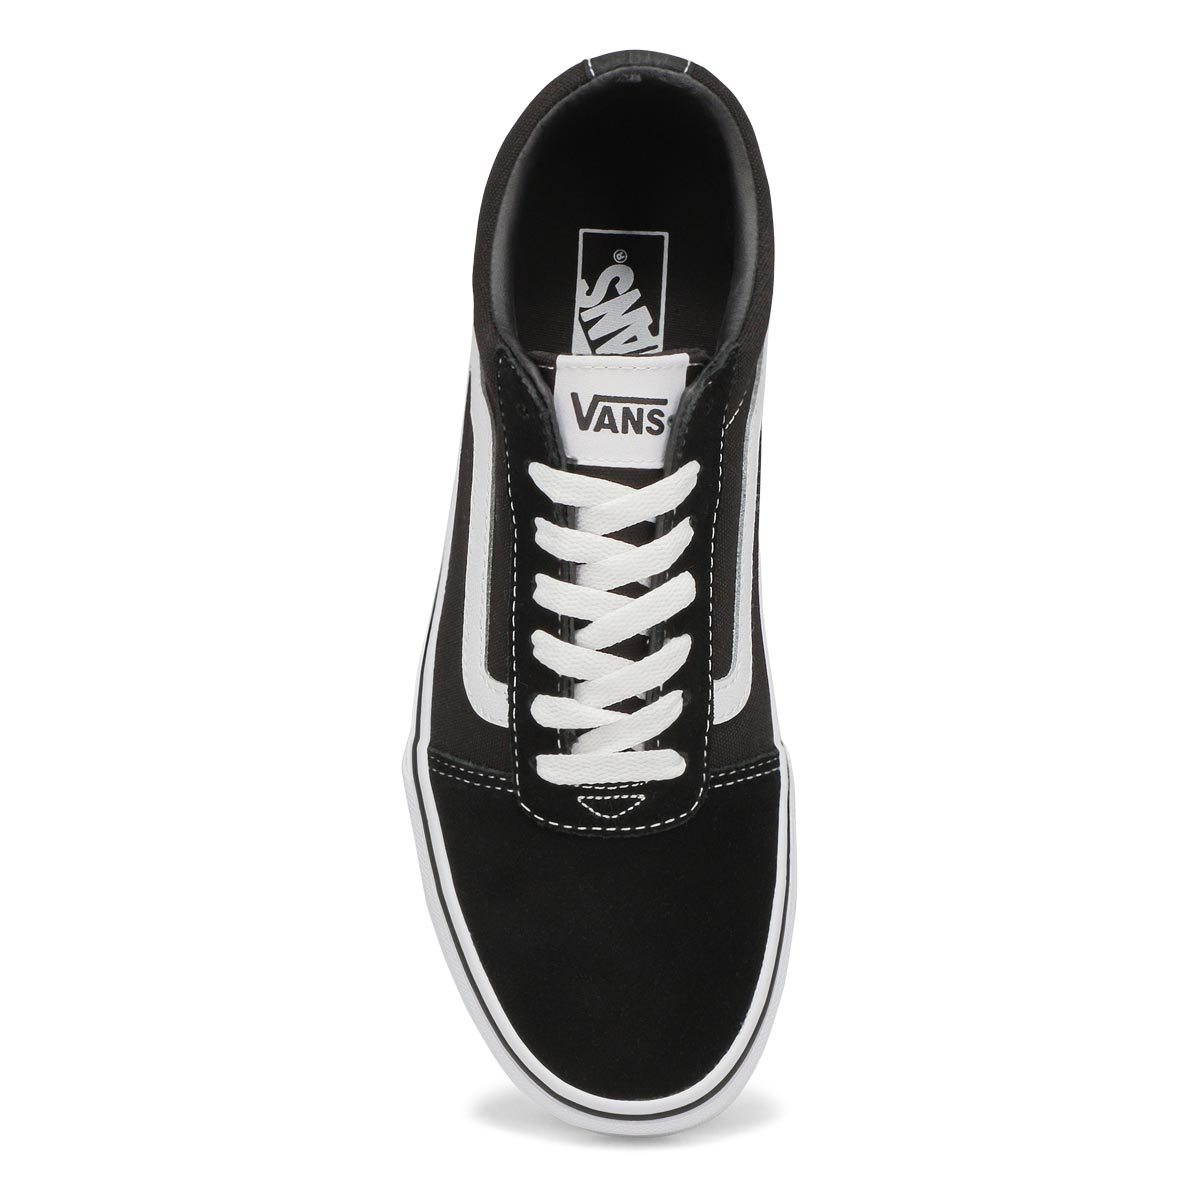 Mns Ward blk/wht lace up sneaker